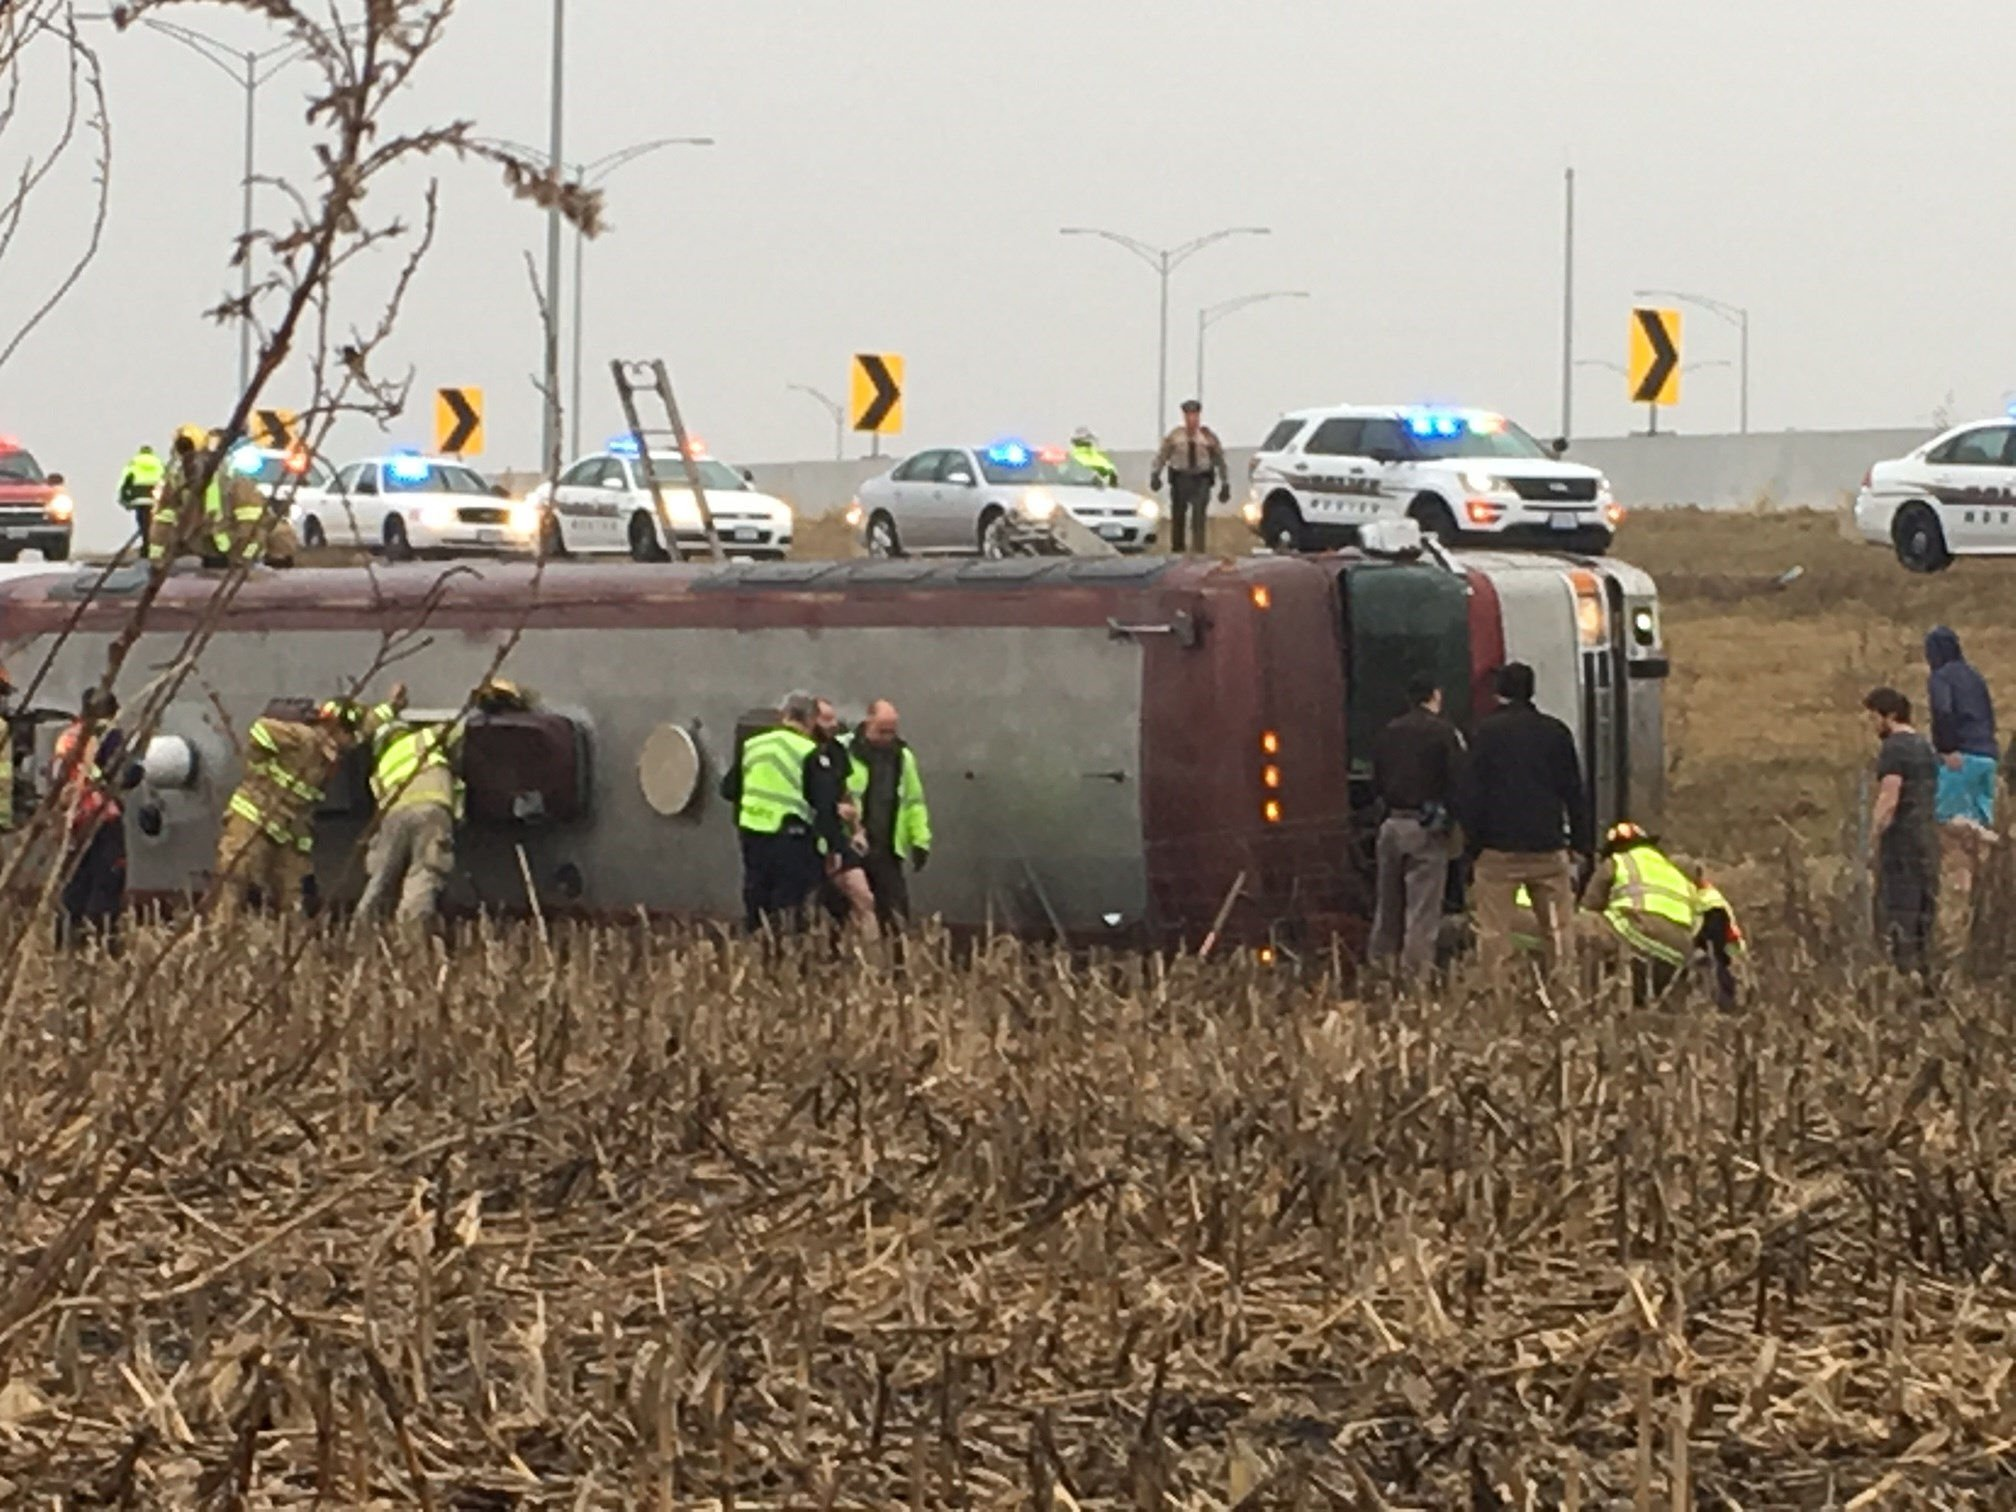 Minor league hockey team bus rolls over; 3 seriously injured